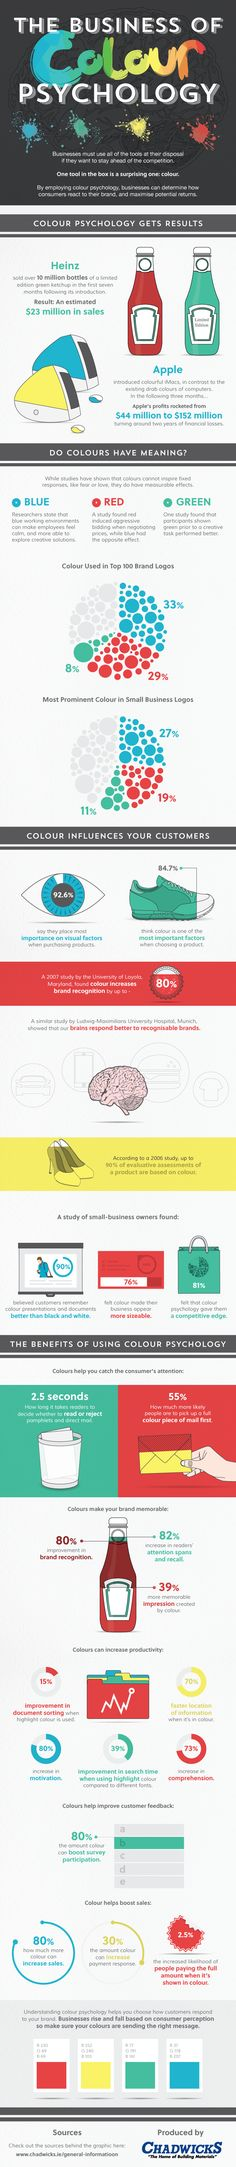 #Infographic on colour psychology in #branding. Colour is important to consumers!